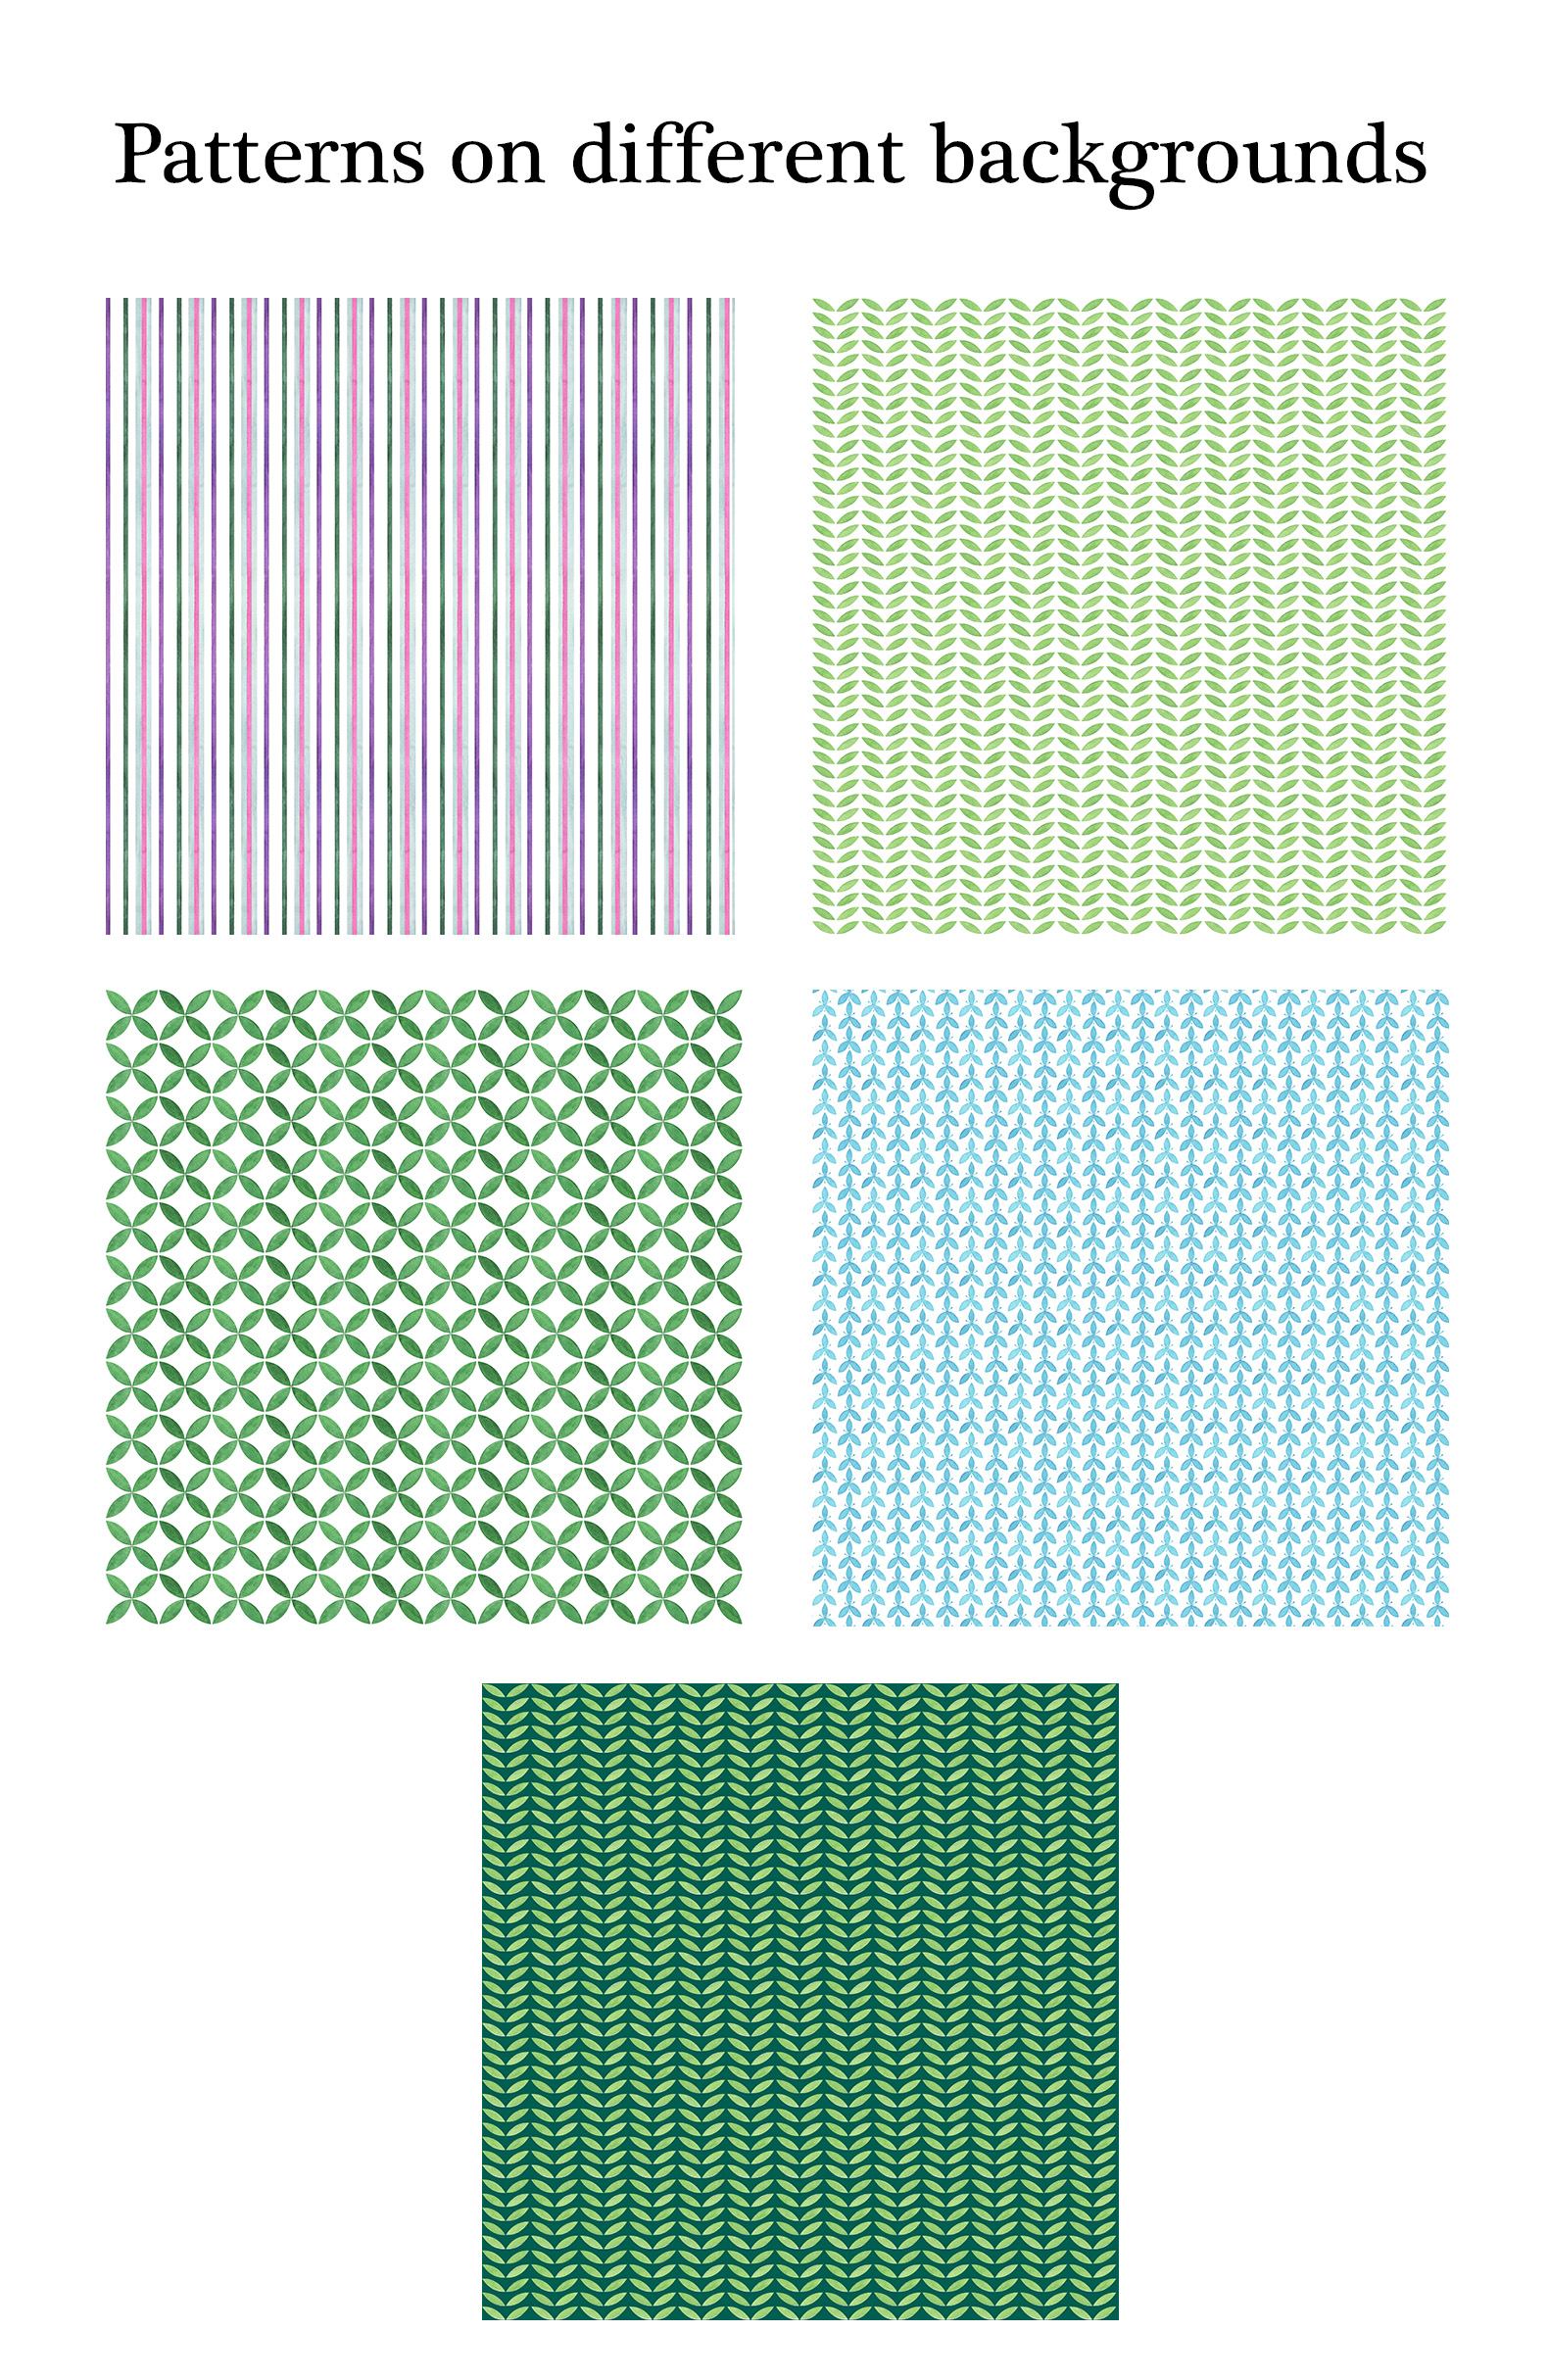 Watercolor Geometric Patterns example image 4